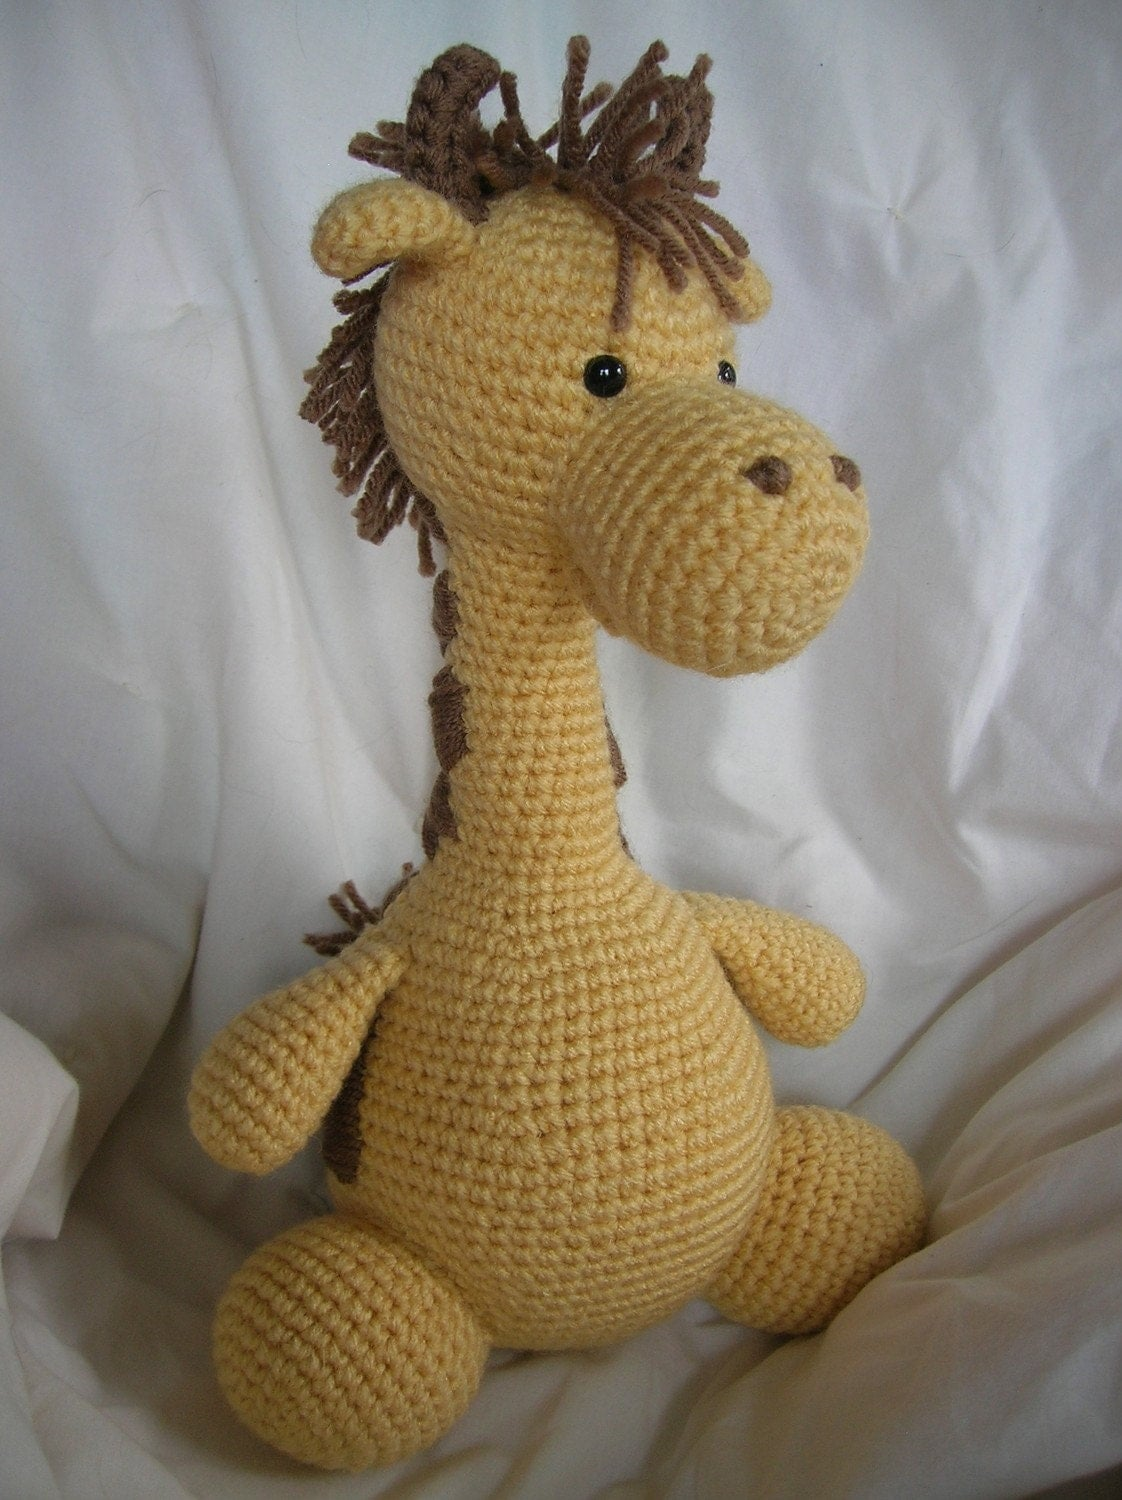 Amigurumi Jirafa Crochet : Girard the Giraffe Amigurumi Crochet PATTERN ONLY by ...